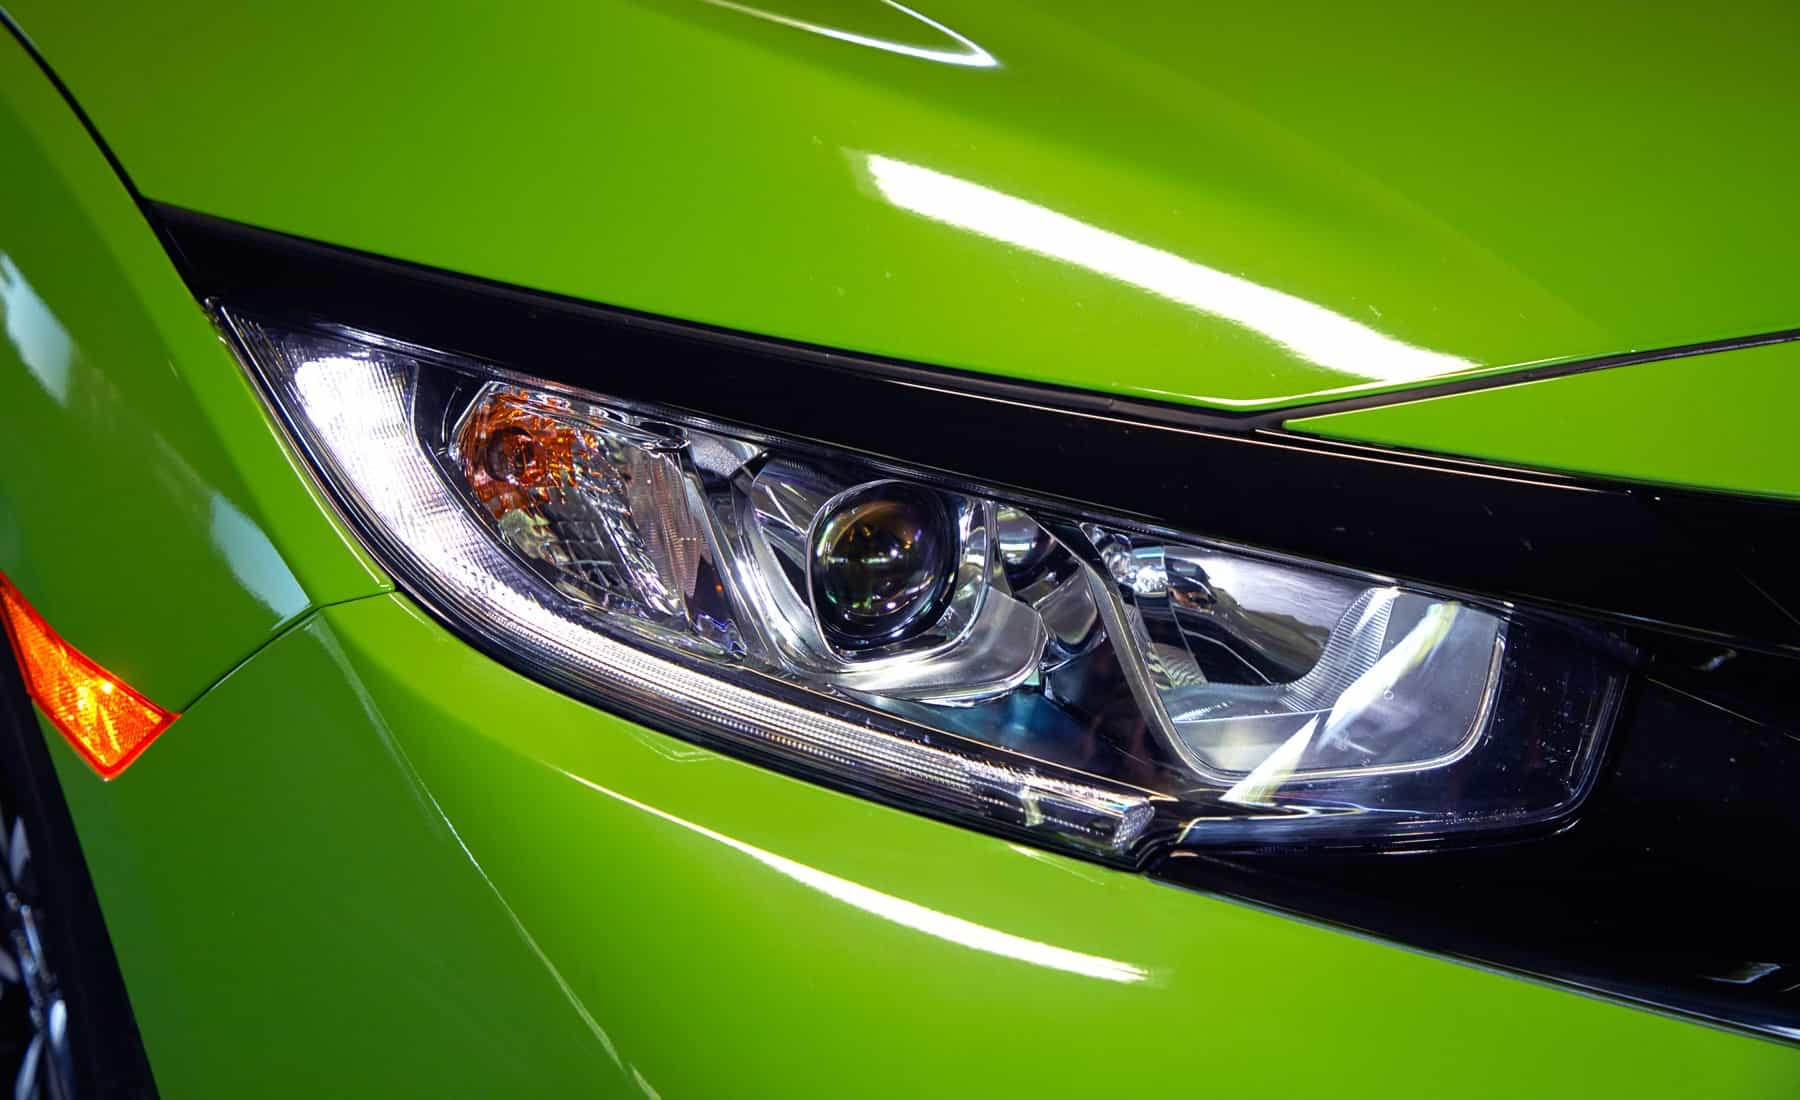 2017 Honda Civic Si Coupe Exterior View Headlight (Photo 11 of 19)